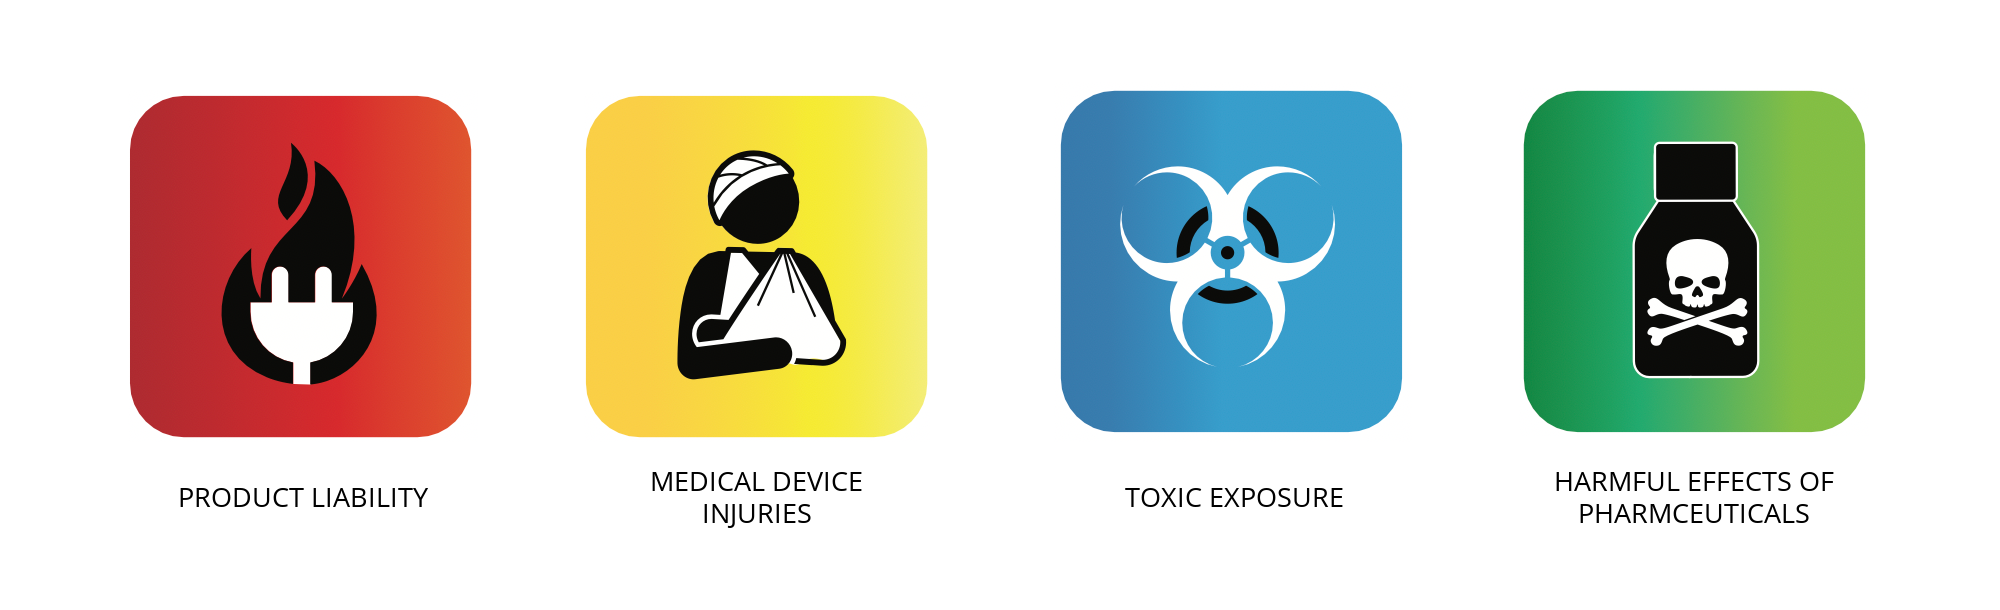 colored boxes with four different icons representing the four categories of mass tort claims: medical device injuries, harmful effects of pharmaceuticals, toxic exposure and product liability